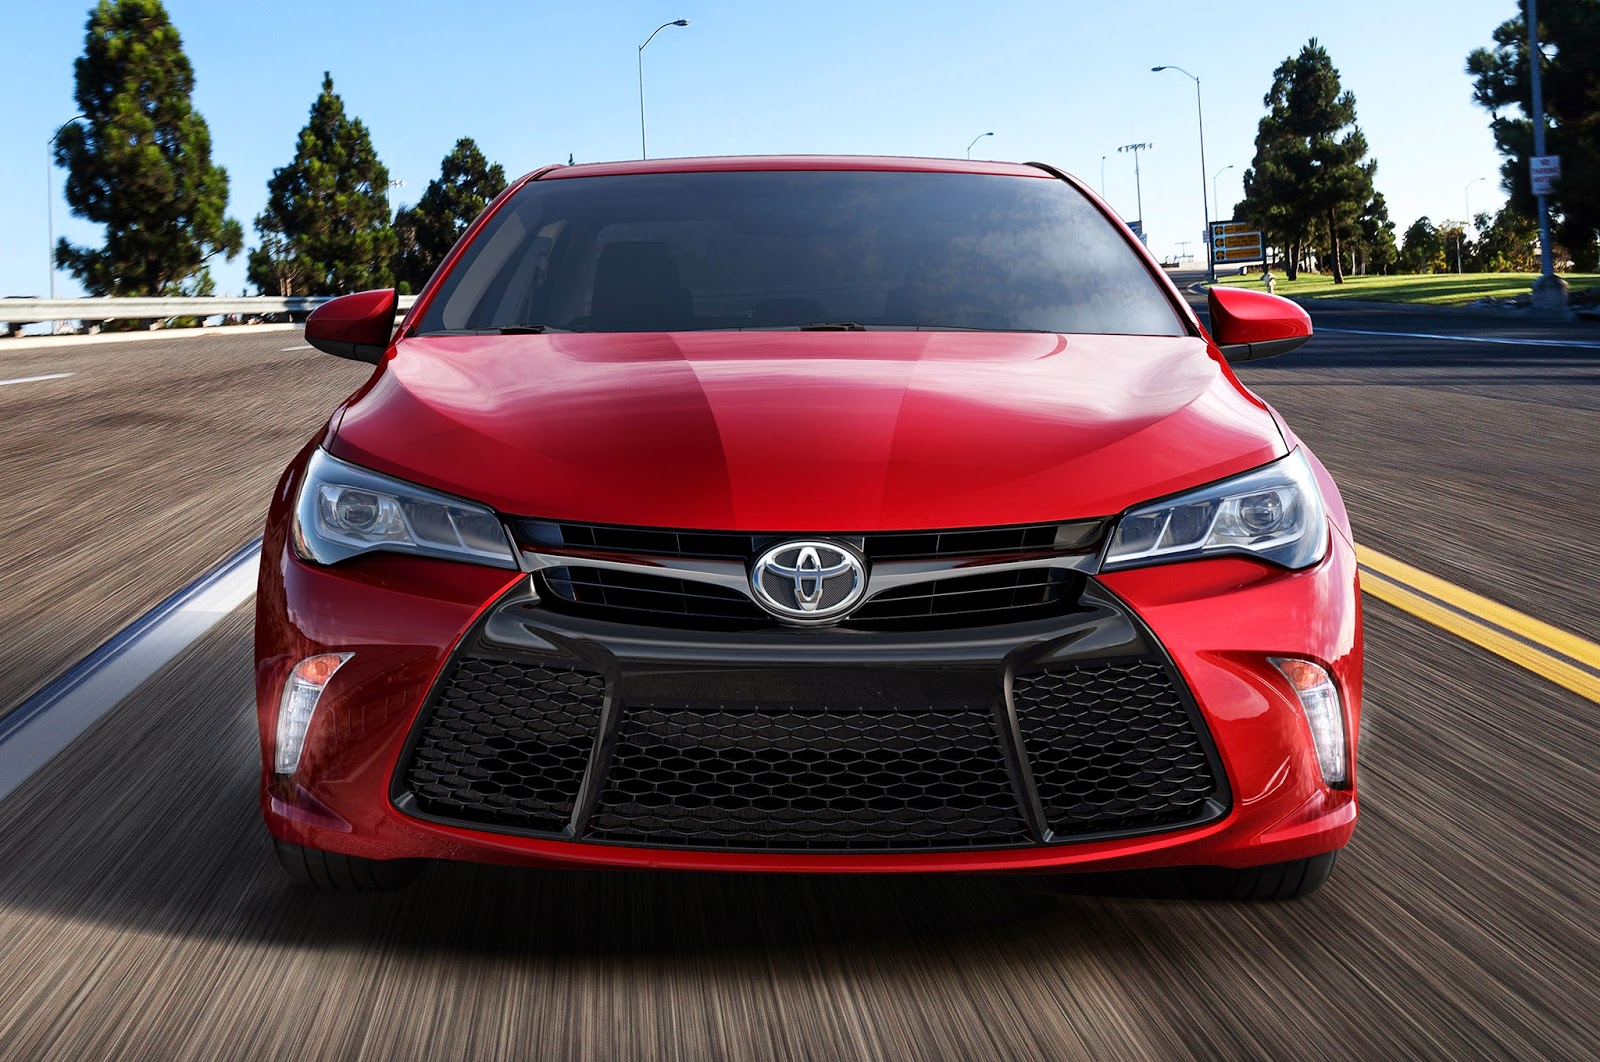 Toyota Camry 2017 Has Been Included In The 8th Generation As Usual Every Of This Car Always Get Updates Ranging Terms Exterior